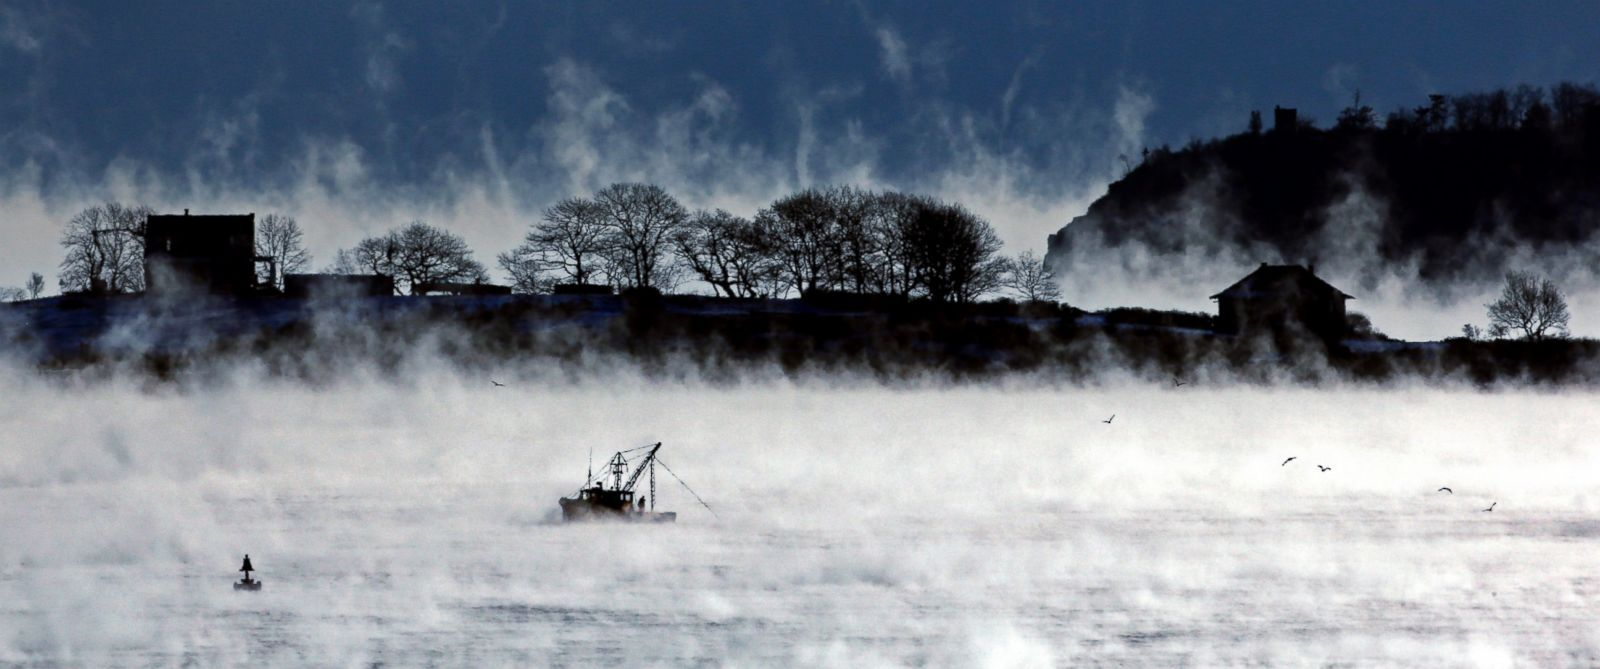 PHOTO: A fisherman works aboard a trawler passing House Island in Casco Bay of Portland, Maine, where the temperature at dawn was minus-9 degrees on Jan. 8, 2014.